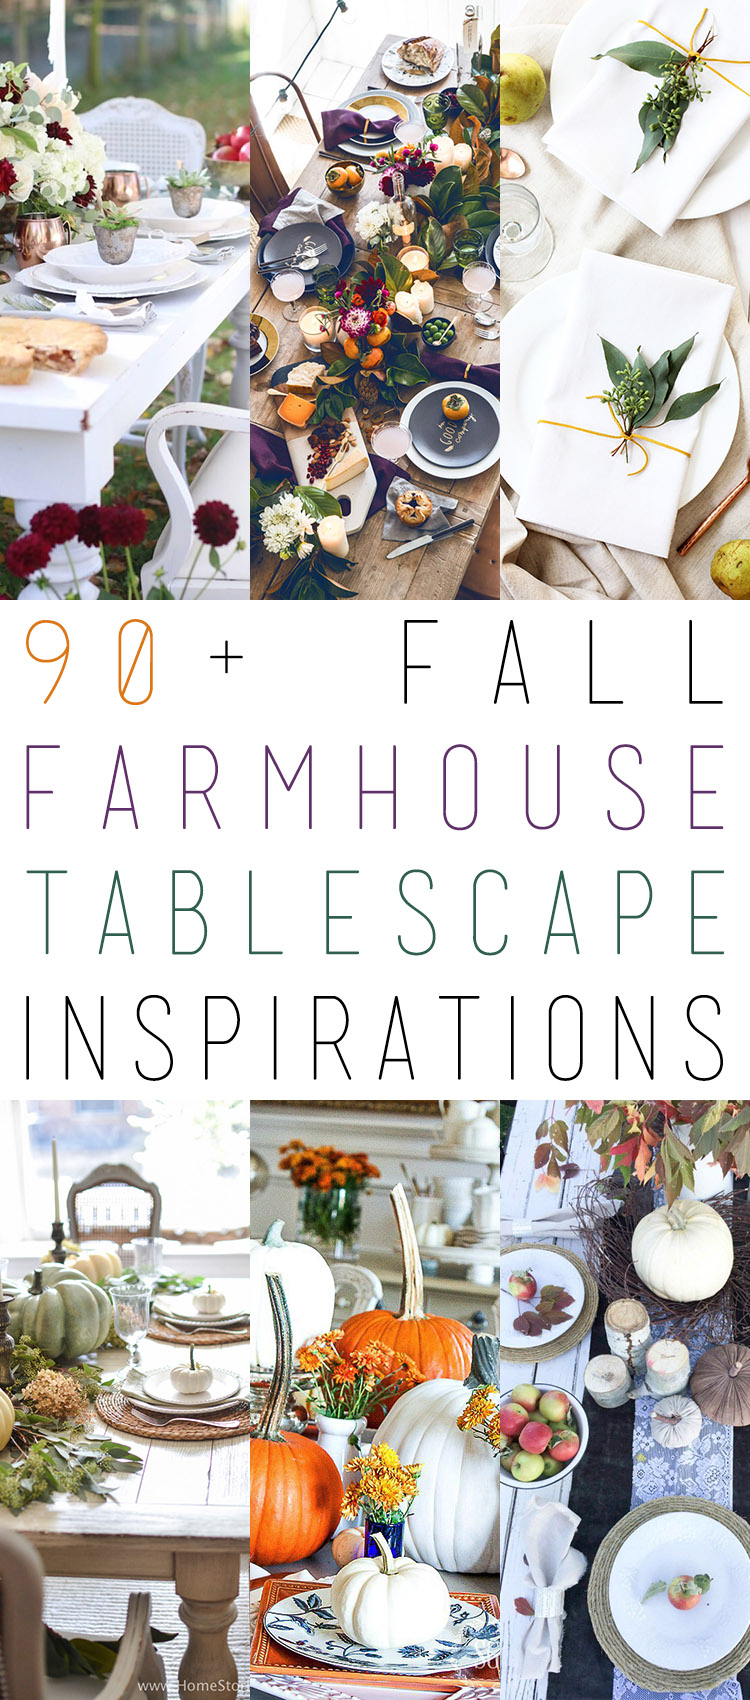 http://thecottagemarket.com/wp-content/uploads/2016/10/tablescapes1.jpg